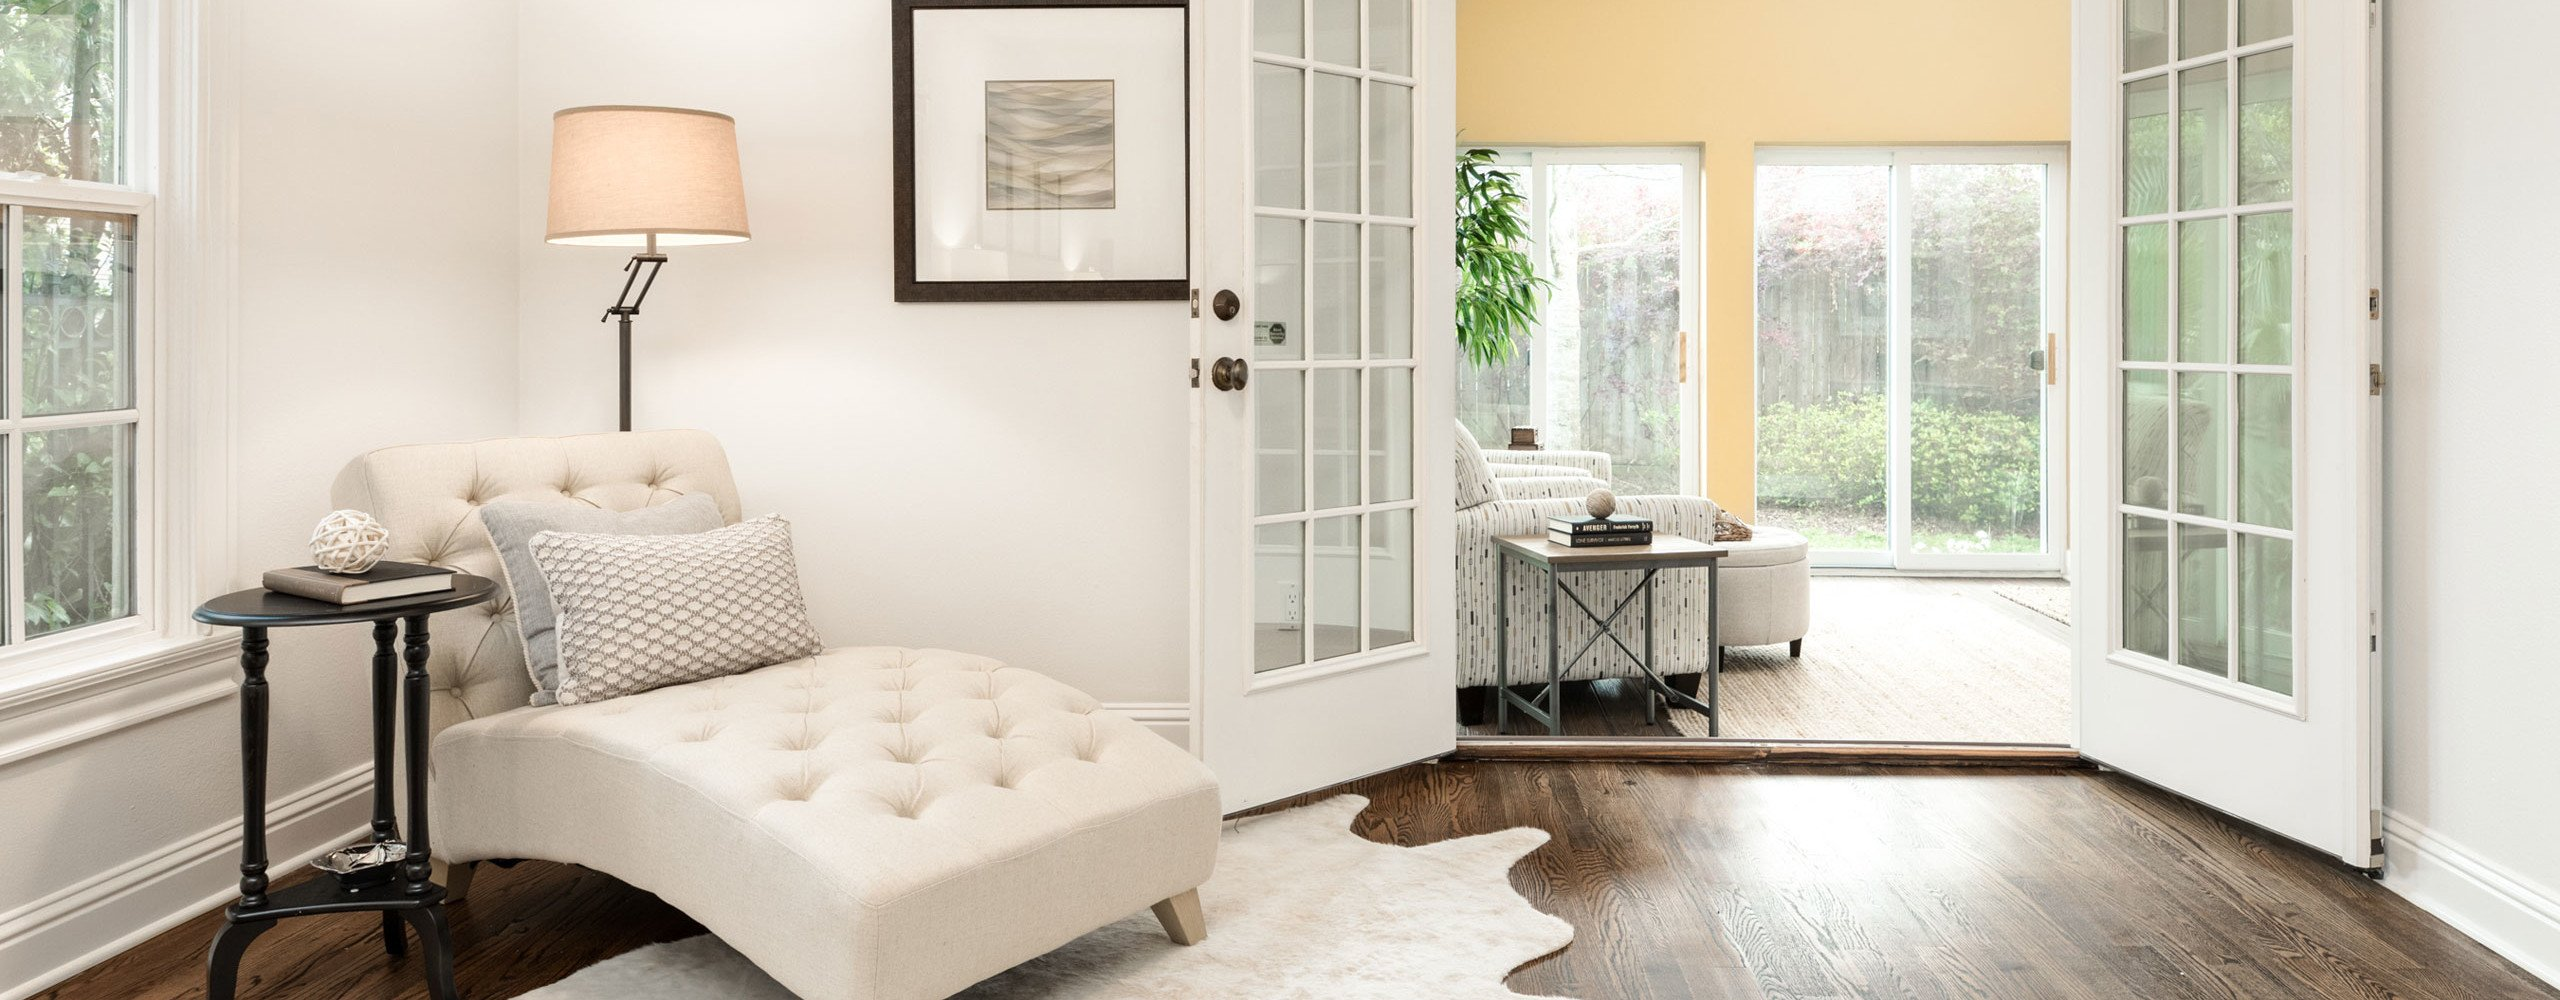 Home staging services in Houston, Texas